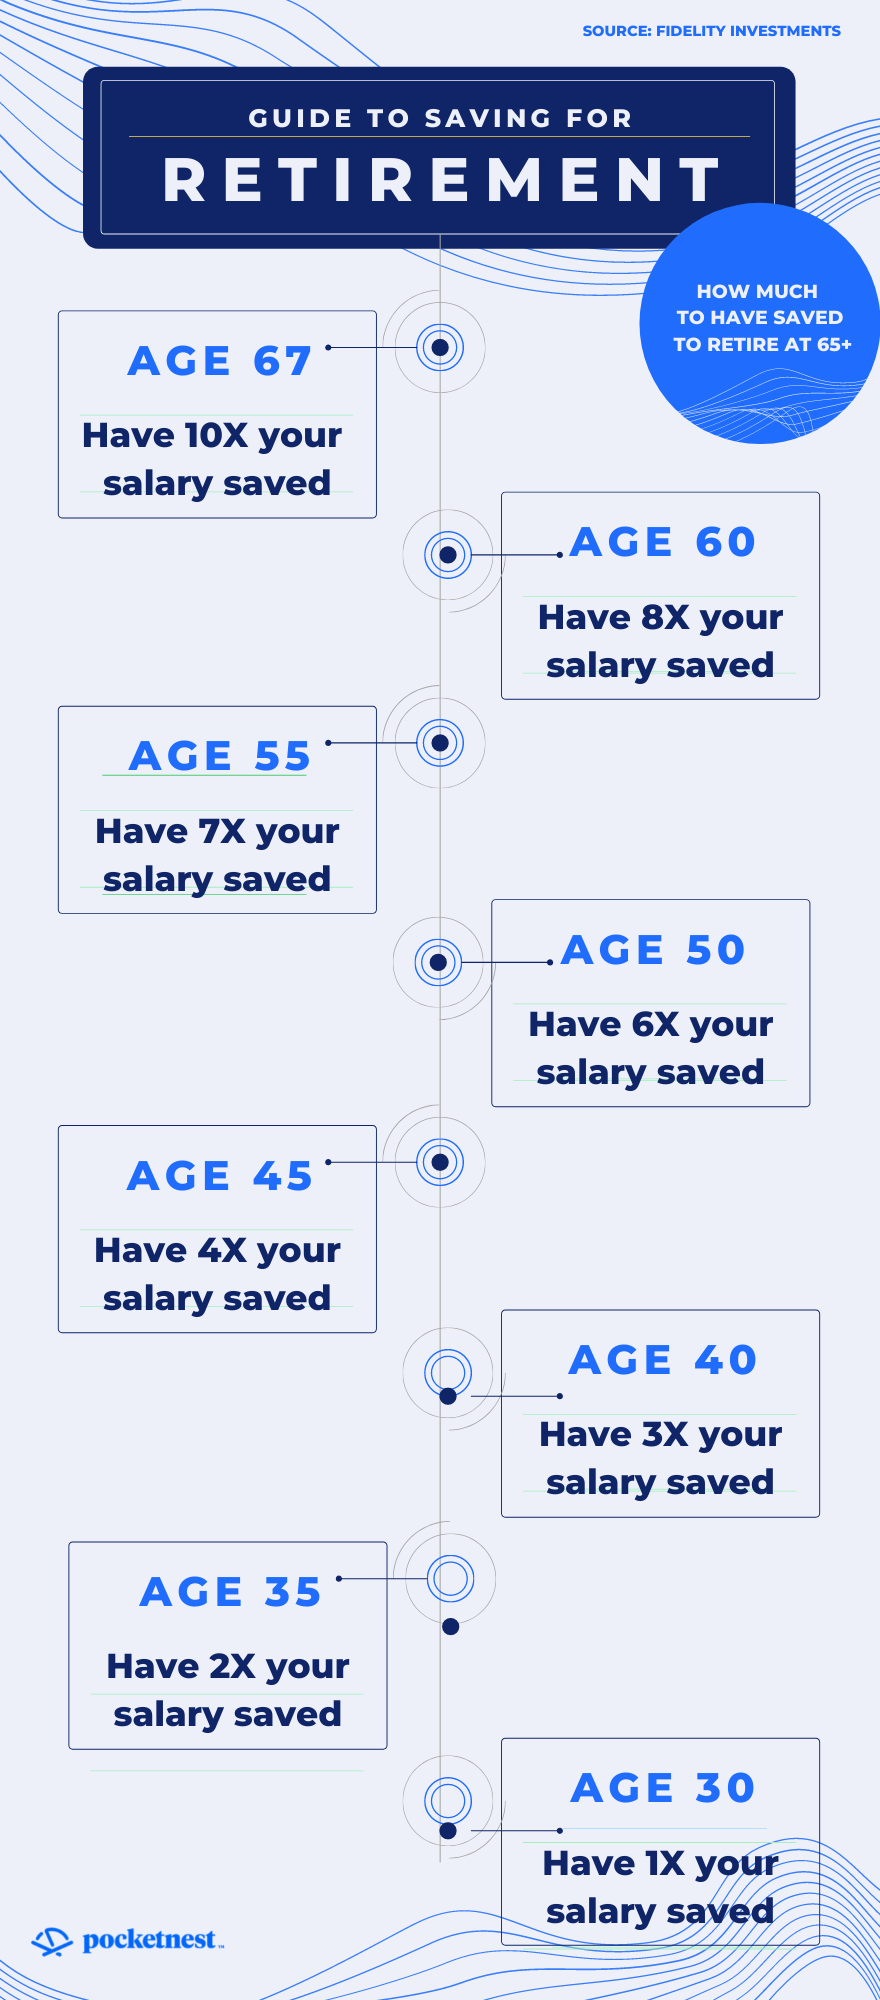 Guide to saving for retirement